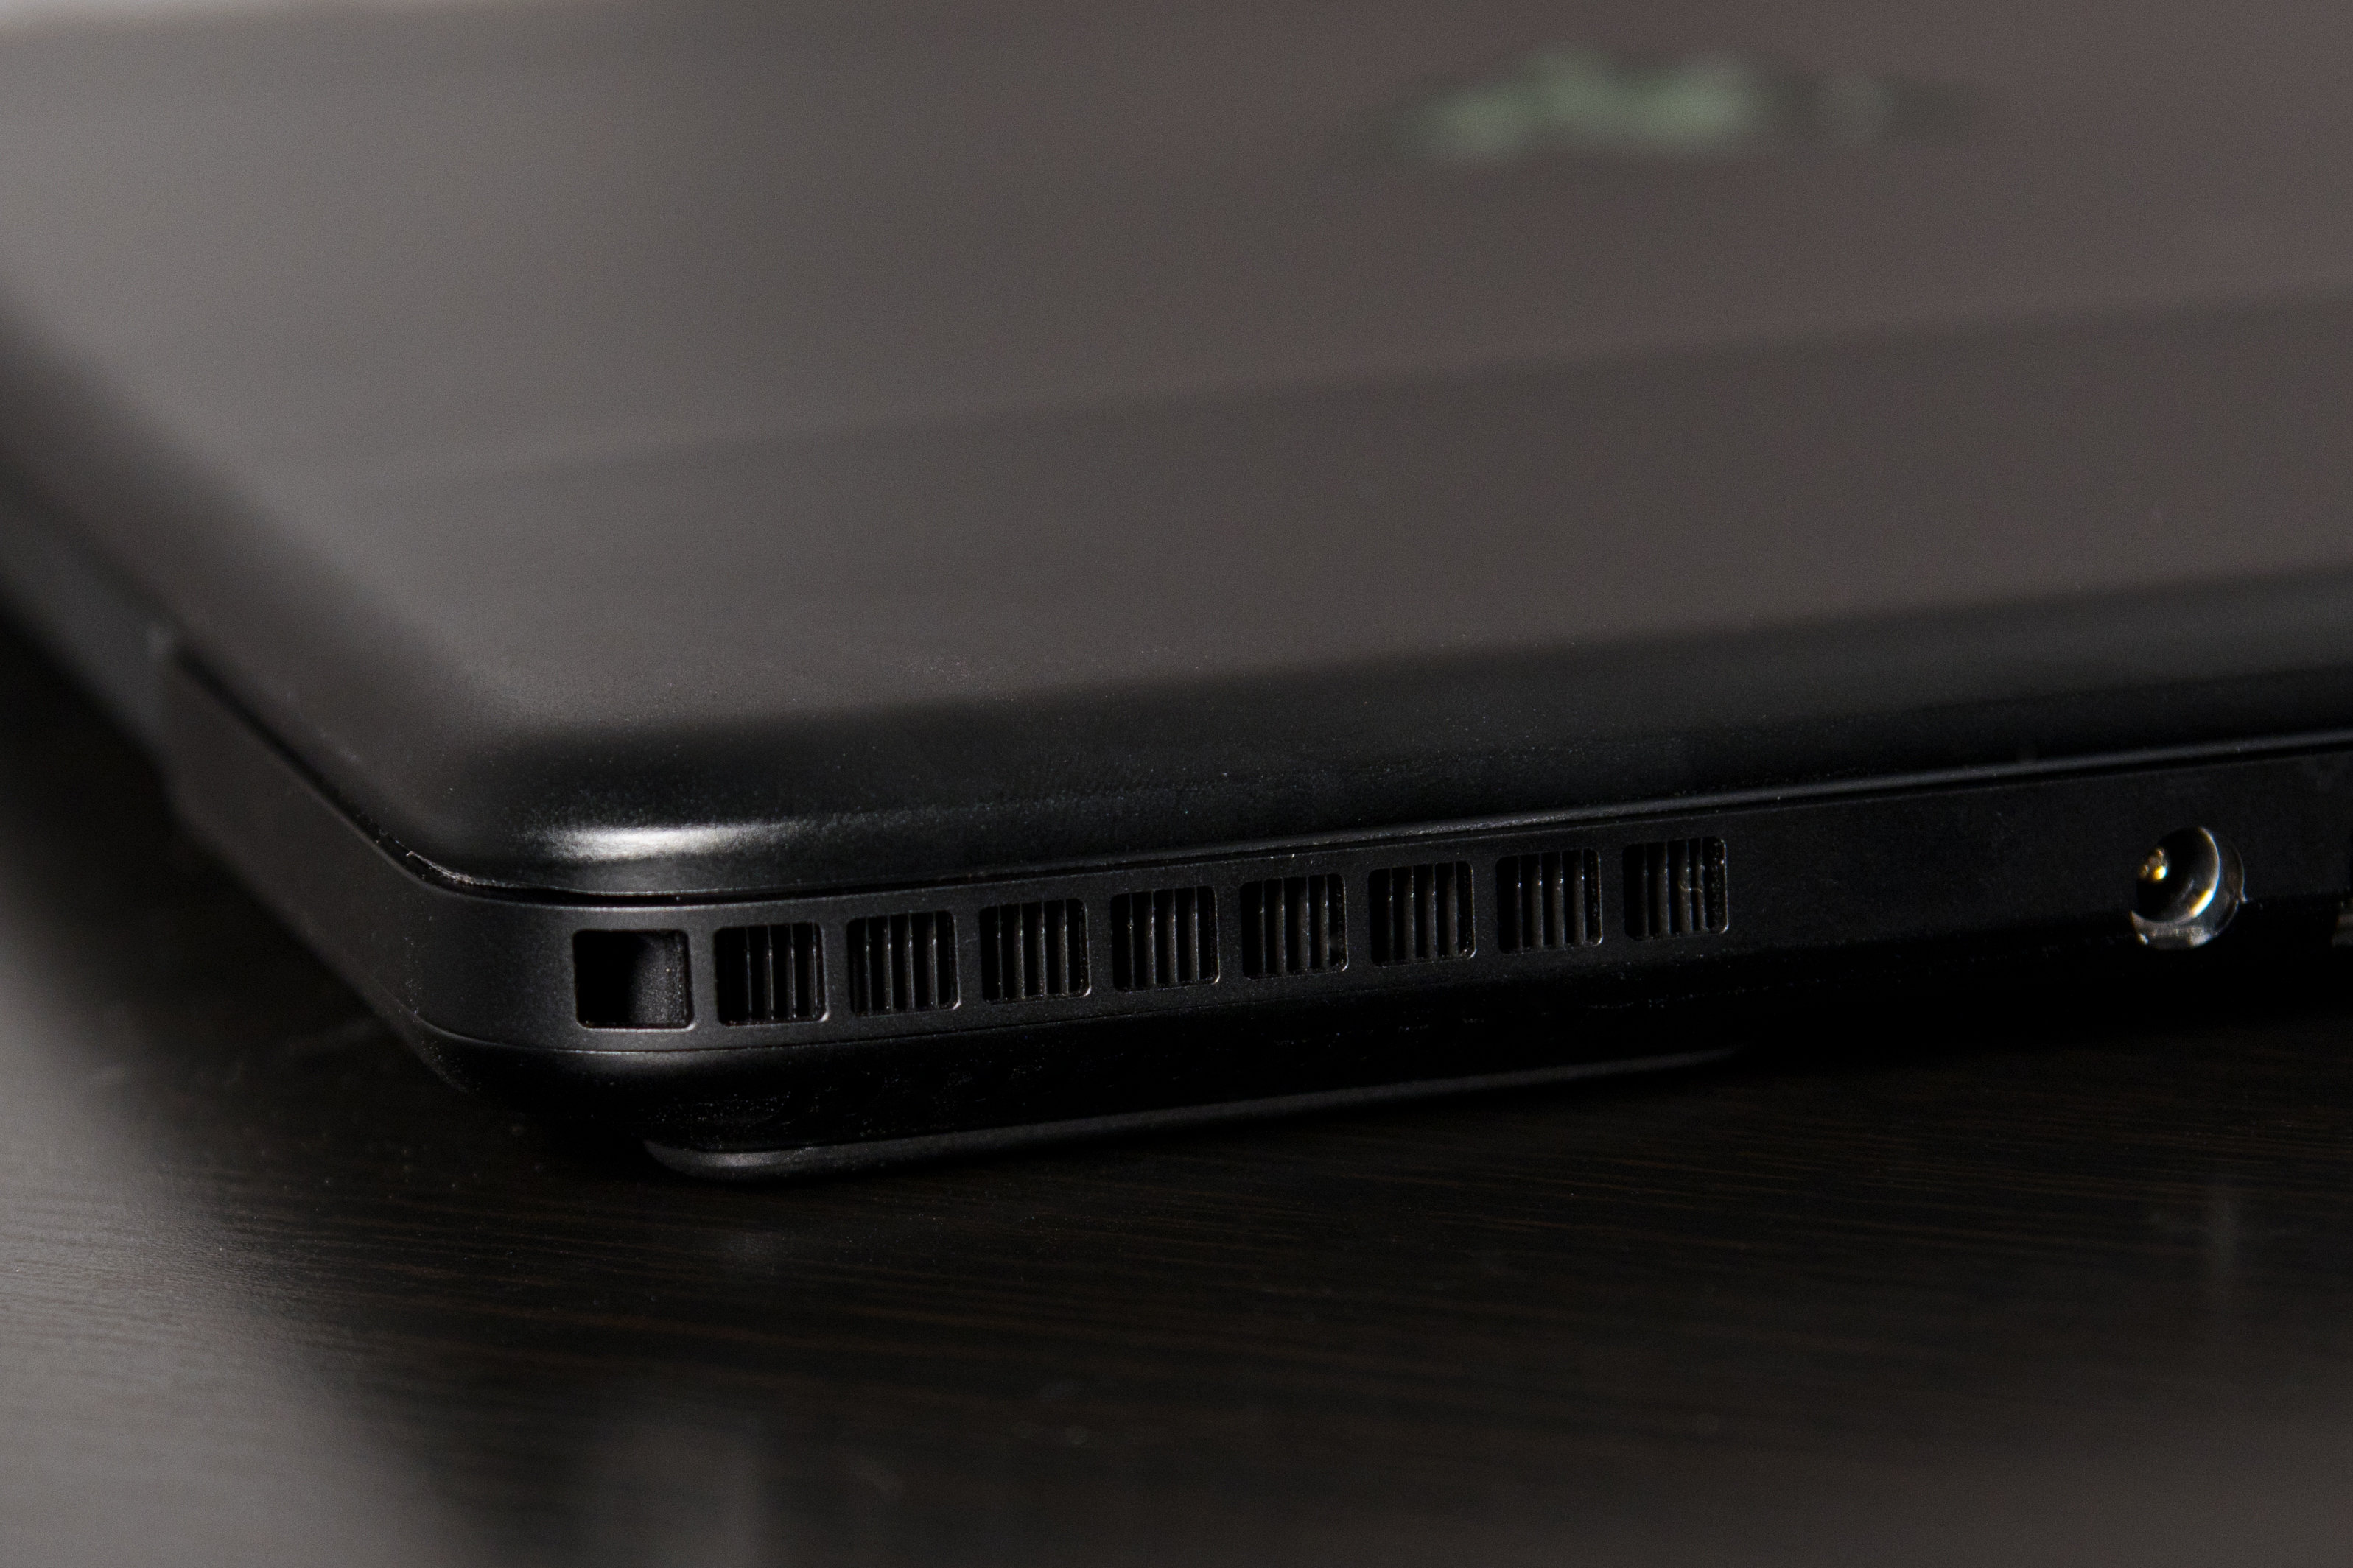 A photo of the Razer Blade Pro's exhaust.